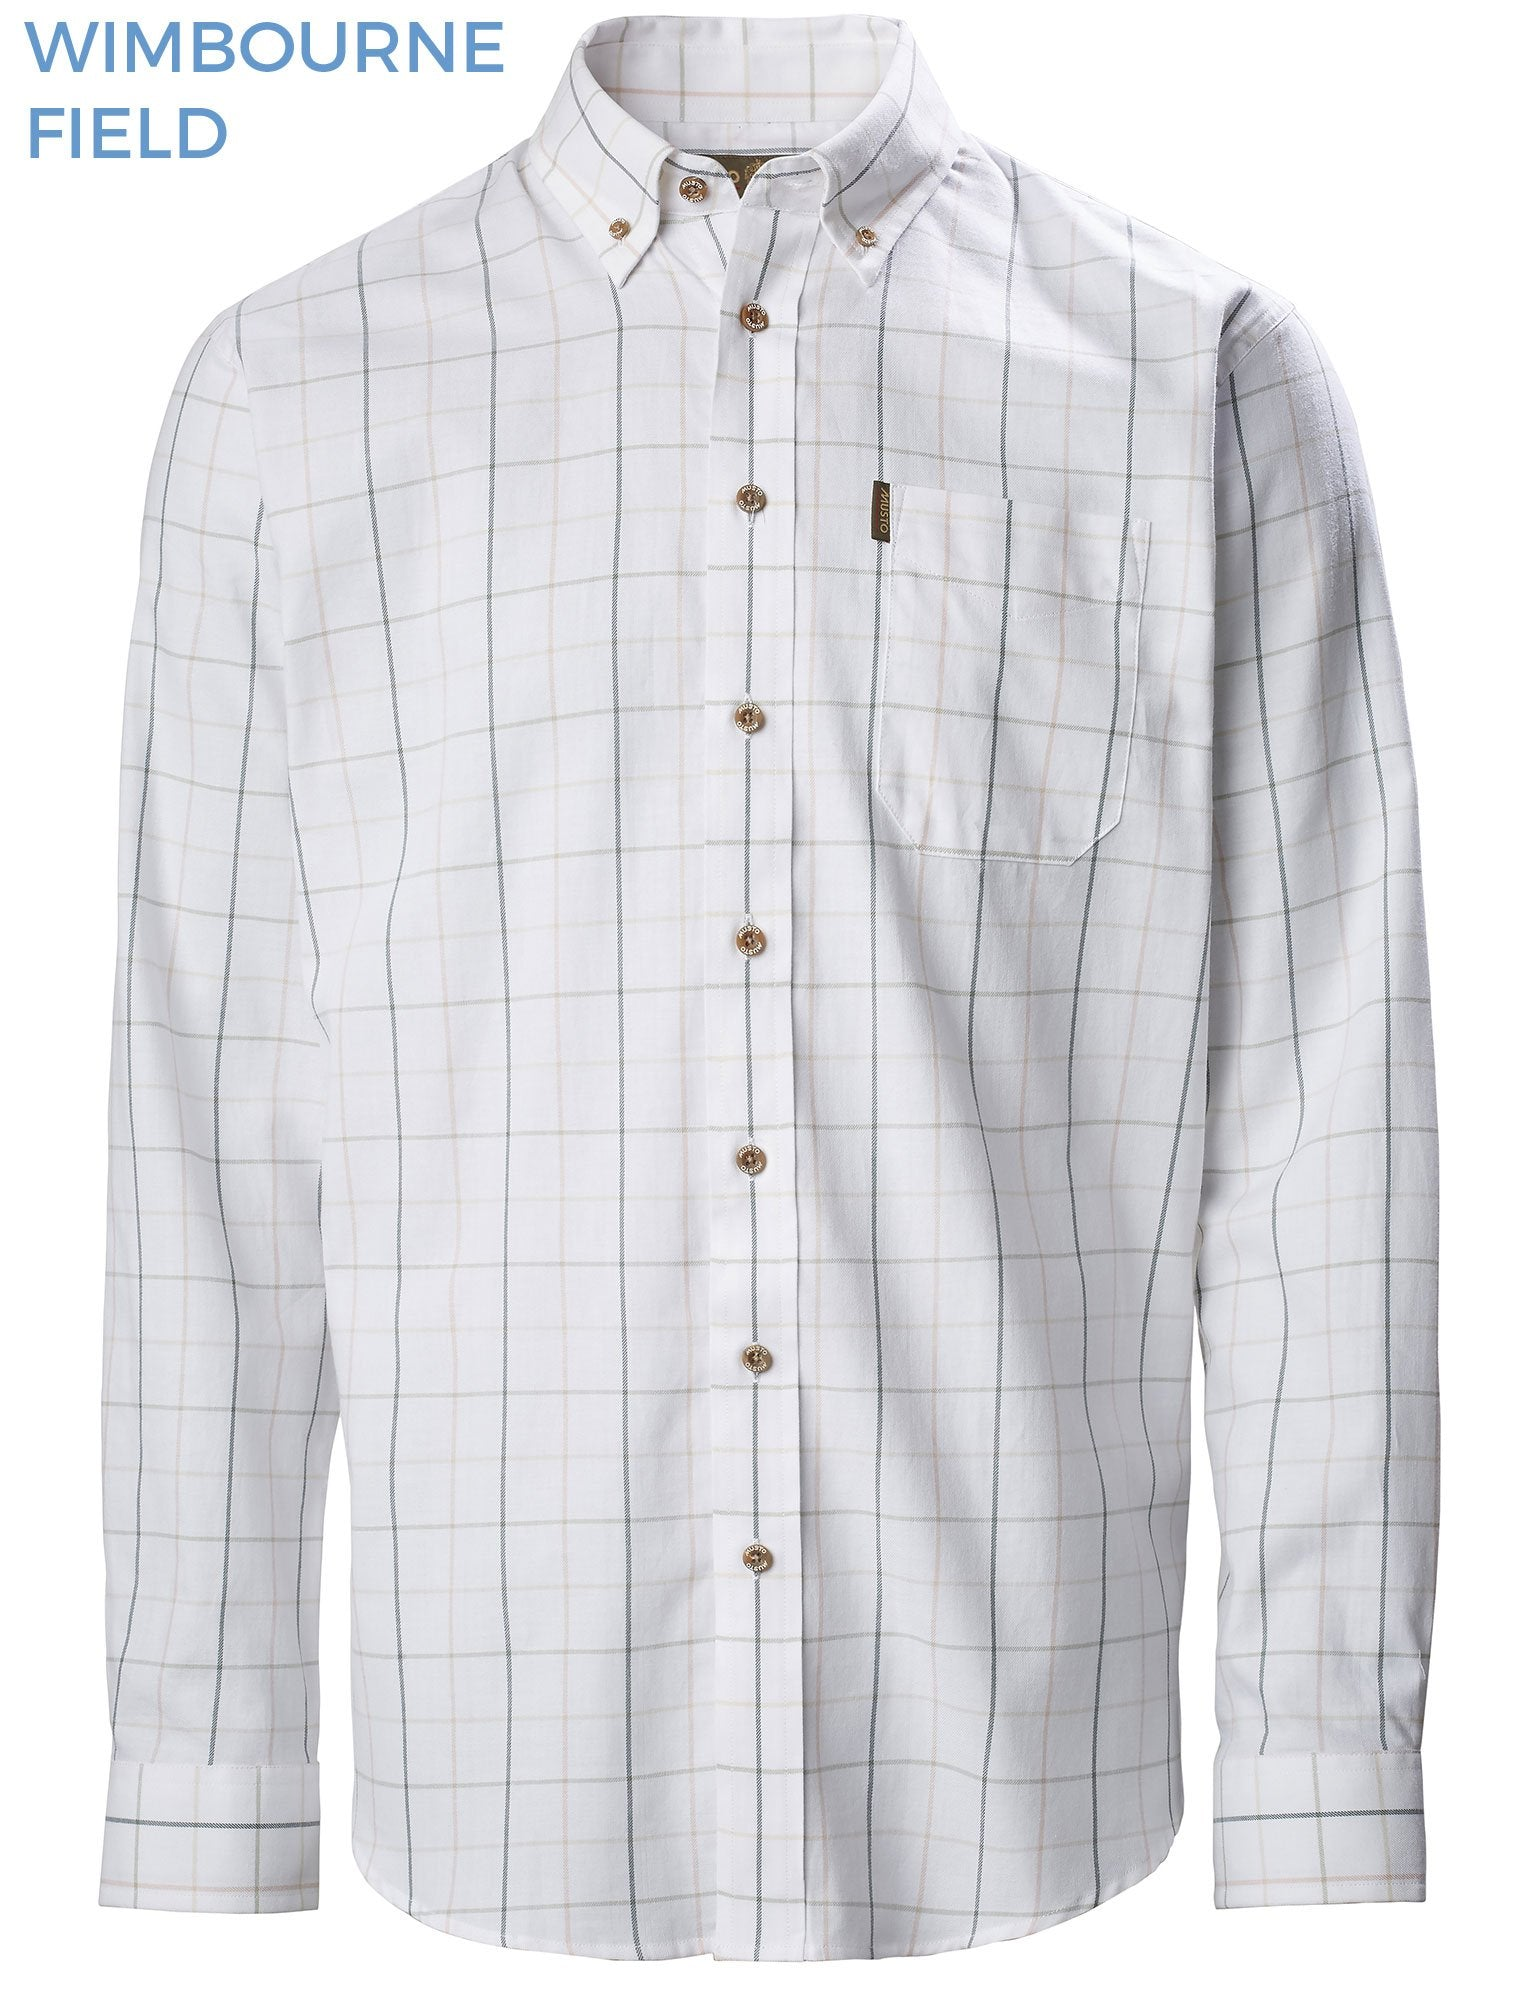 Musto Classic Button Down Shirt | Wimbourne Field